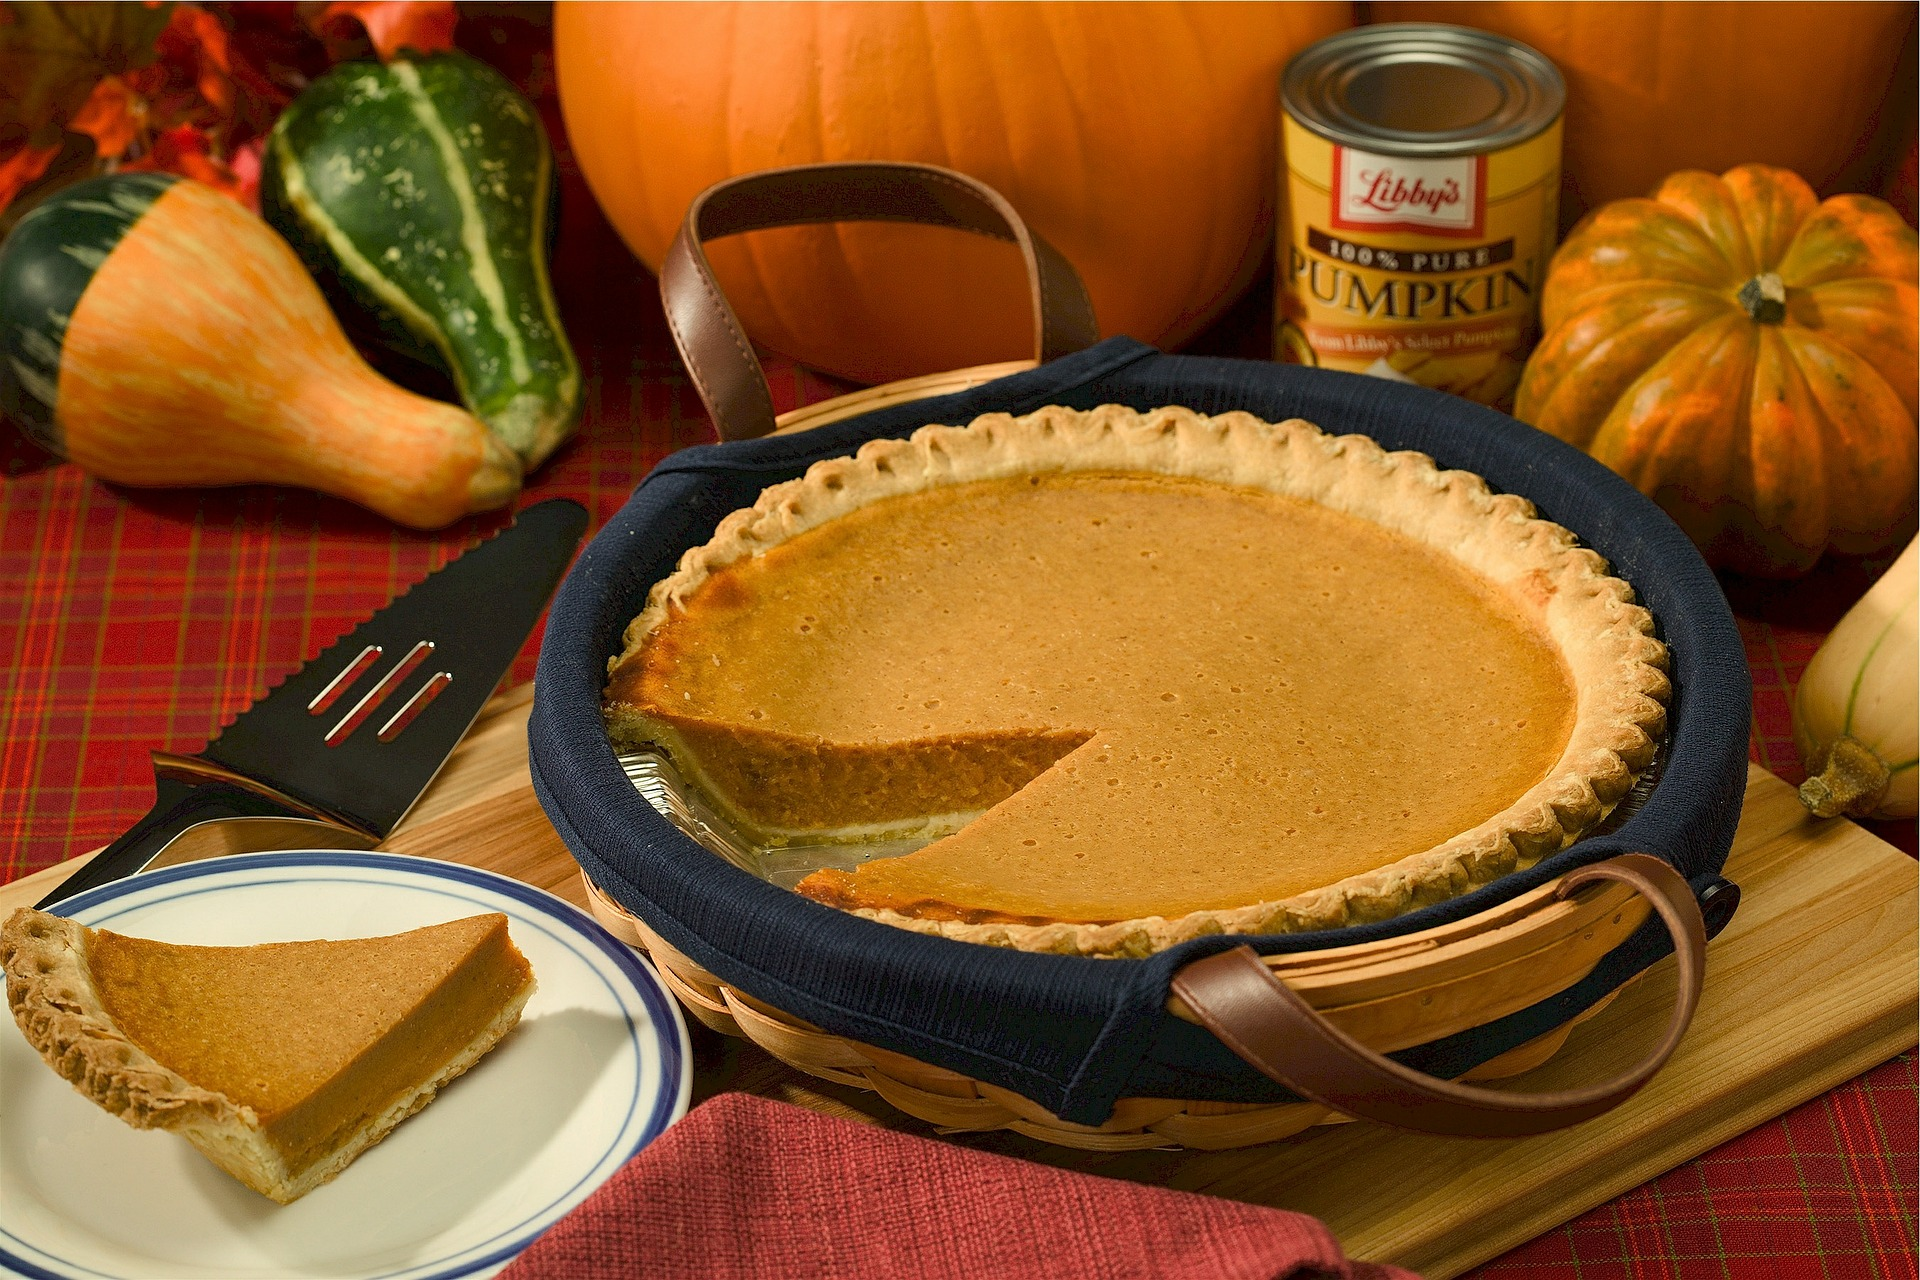 pumpkin-pie-520655_1920